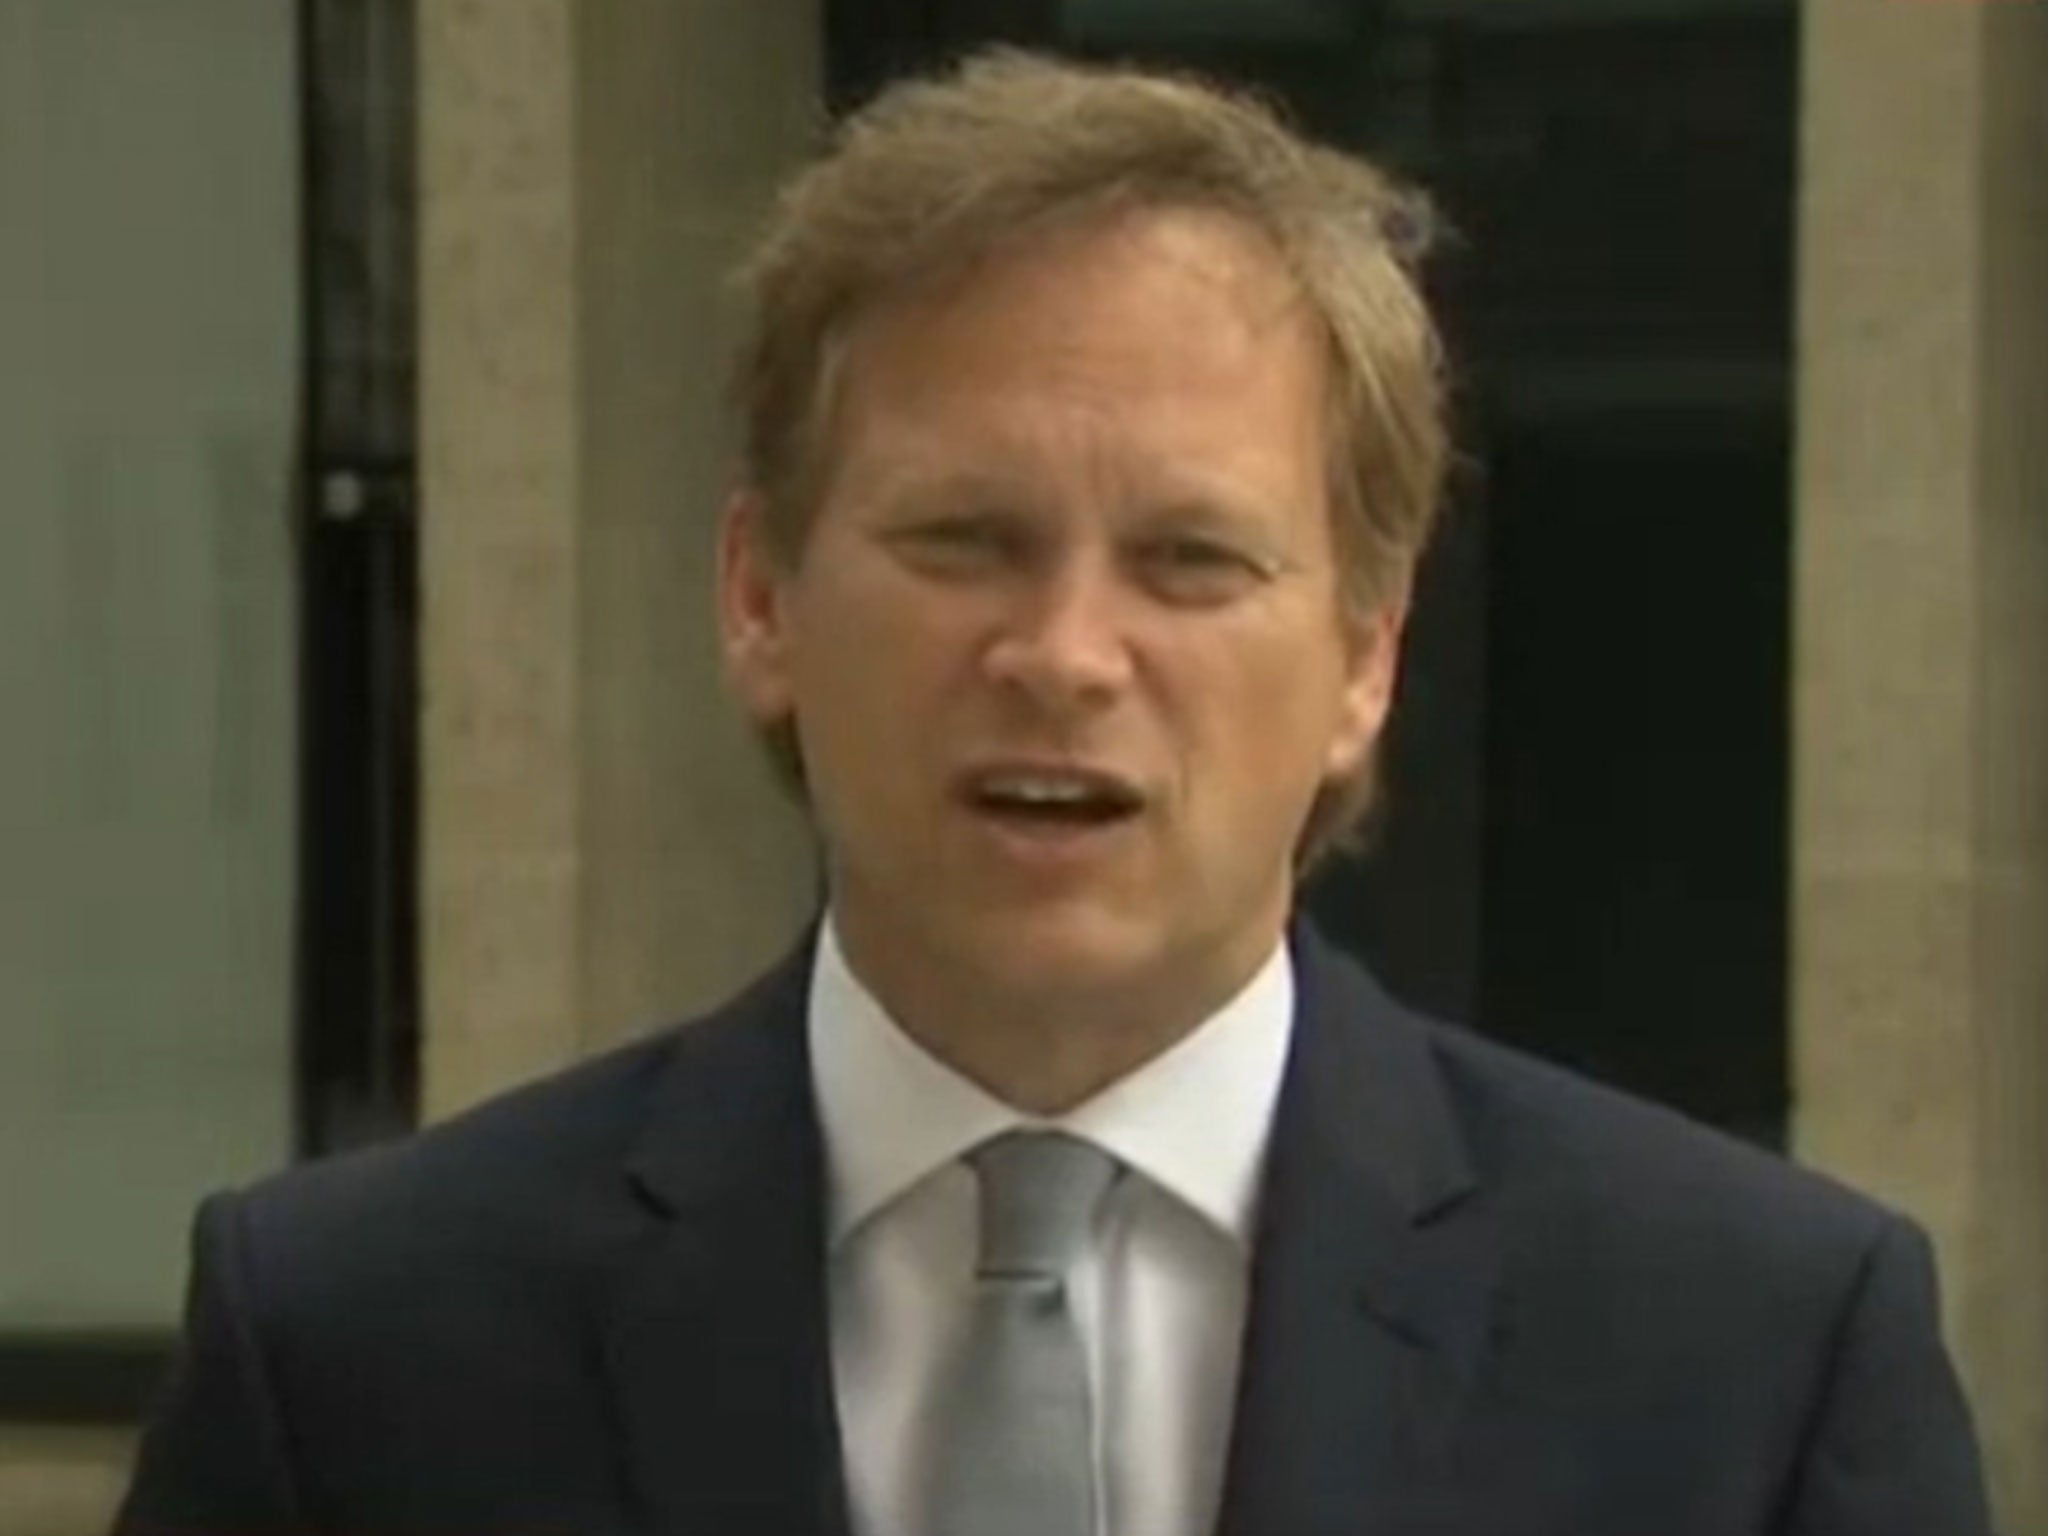 Grant Shapps dodges question on whether PM knew about Dominic Cummings' lockdown trip to Durham